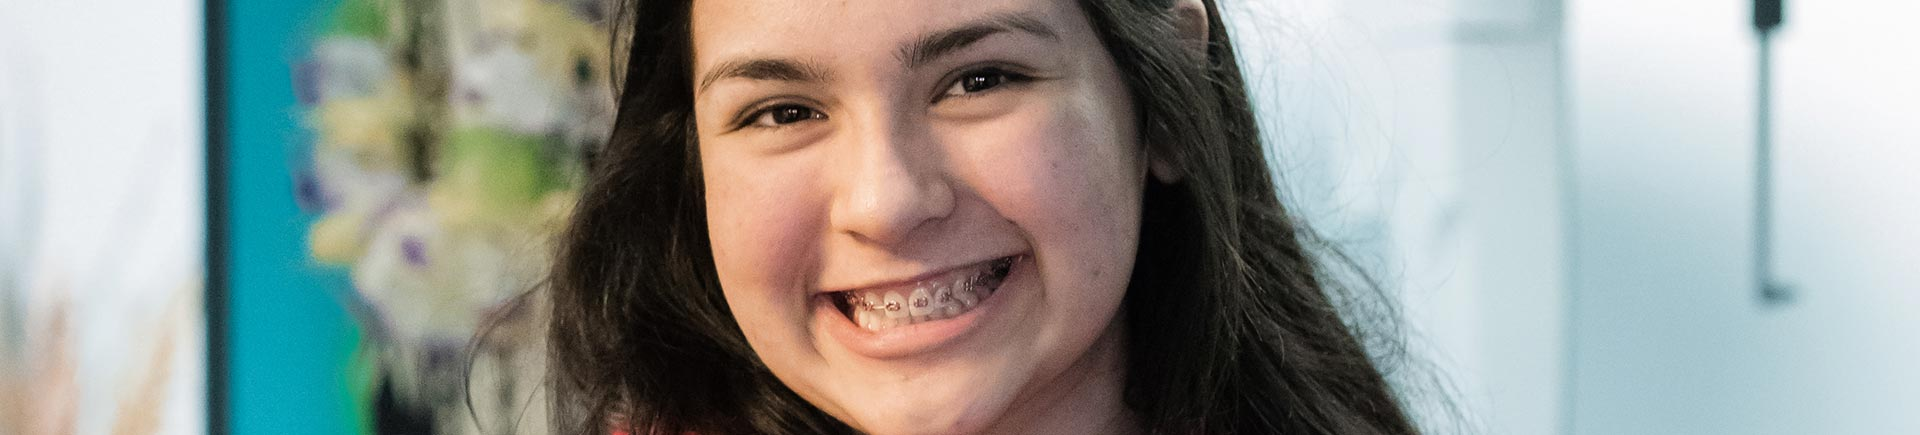 A cheerful teenage girl with orthodontic braces.